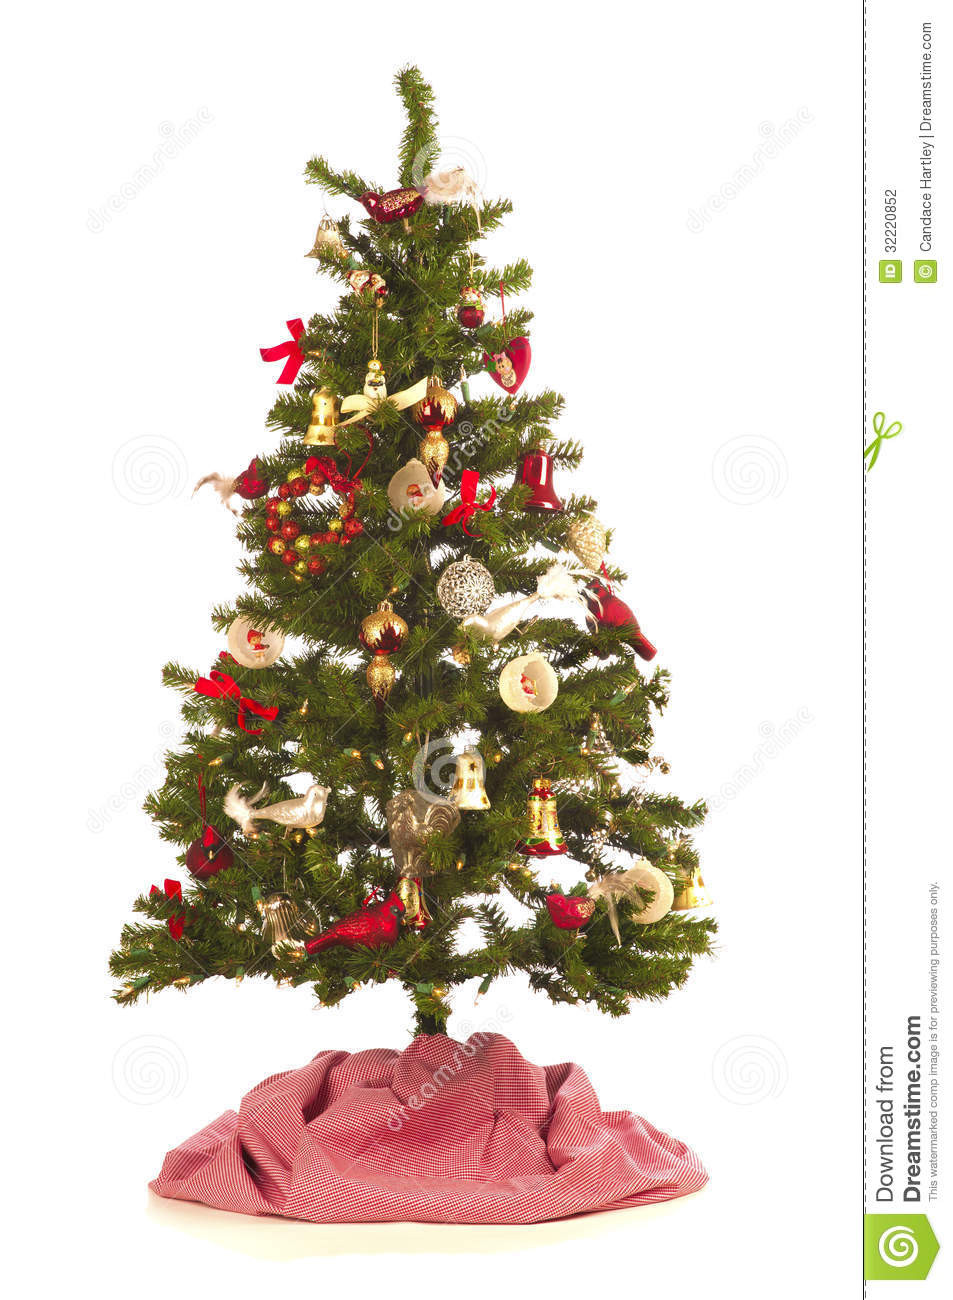 Best Of Small Christmas Tree Decorations – Happy Holidays Small Christmas Decorations Of Gorgeous 43 Images Small Christmas Decorations